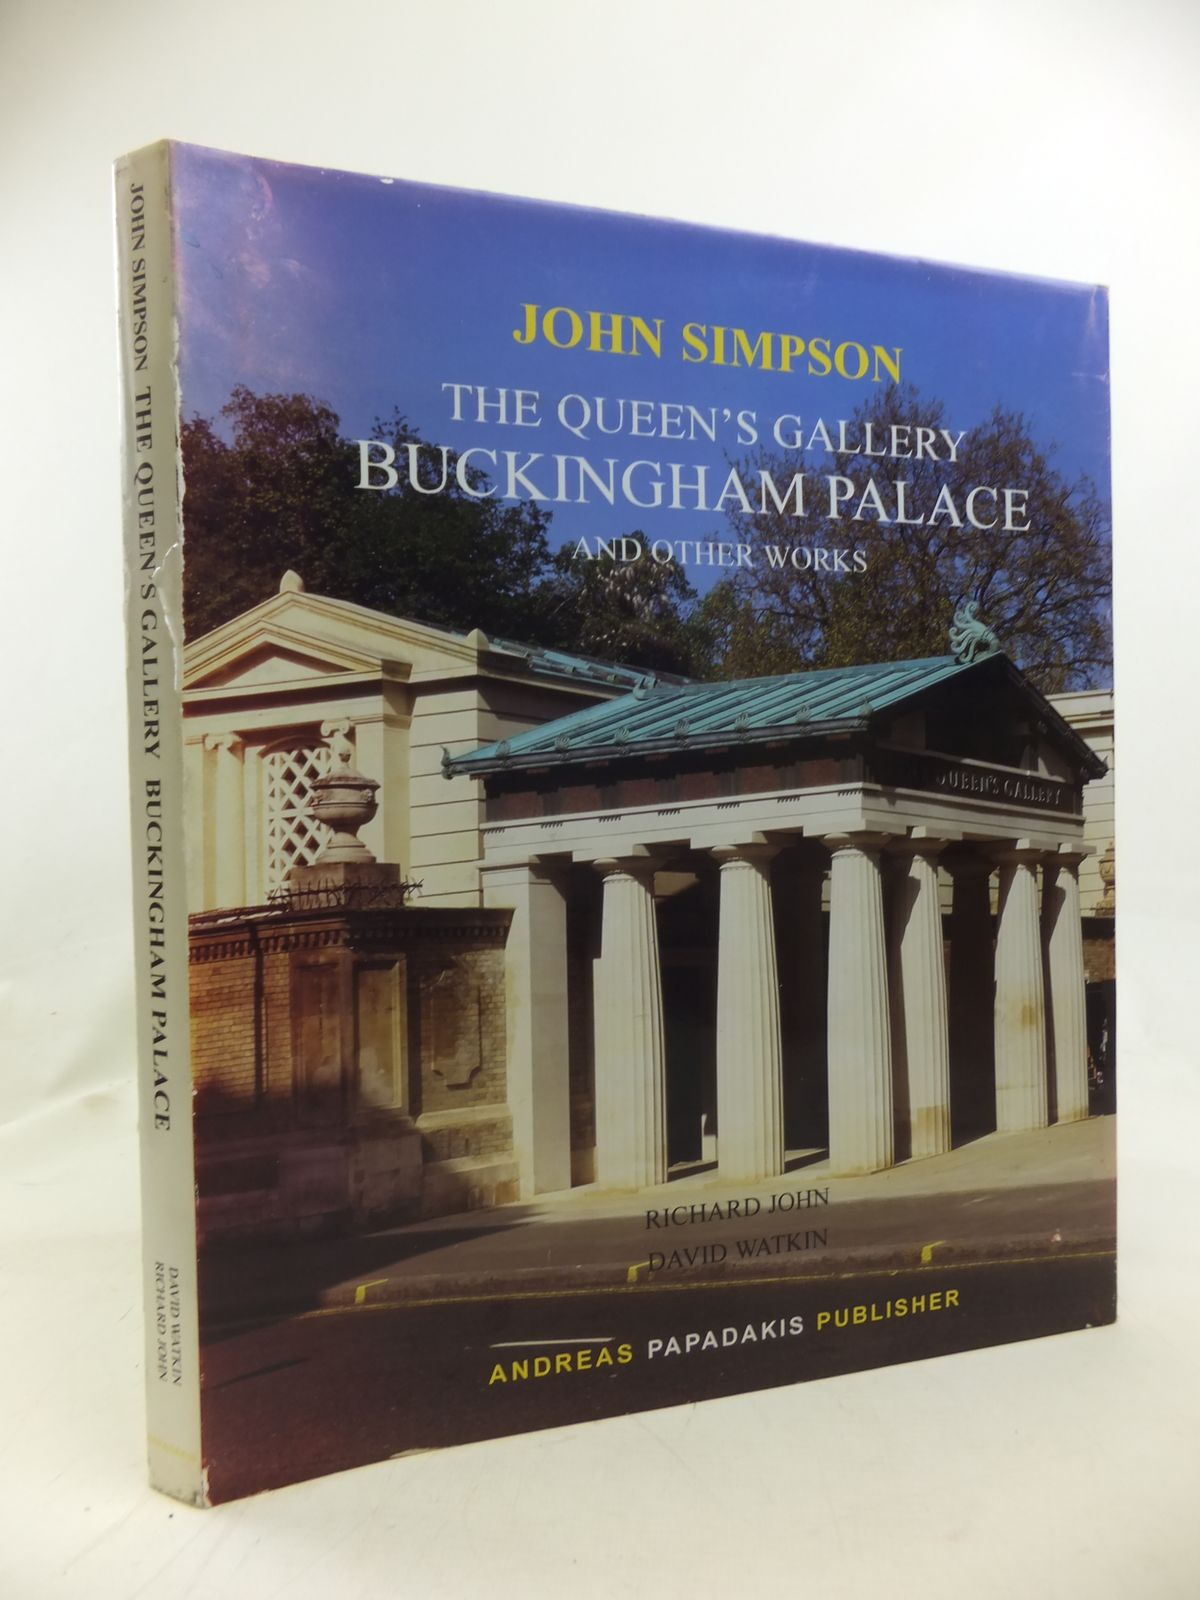 Photo of JOHN SIMPSON THE QUEEN'S GALLERY BUCKINGHAM PALACE AND OTHER WORKS written by John, Richard<br />Watkin, David published by Andreas Papadakis Publisher (STOCK CODE: 1810452)  for sale by Stella & Rose's Books